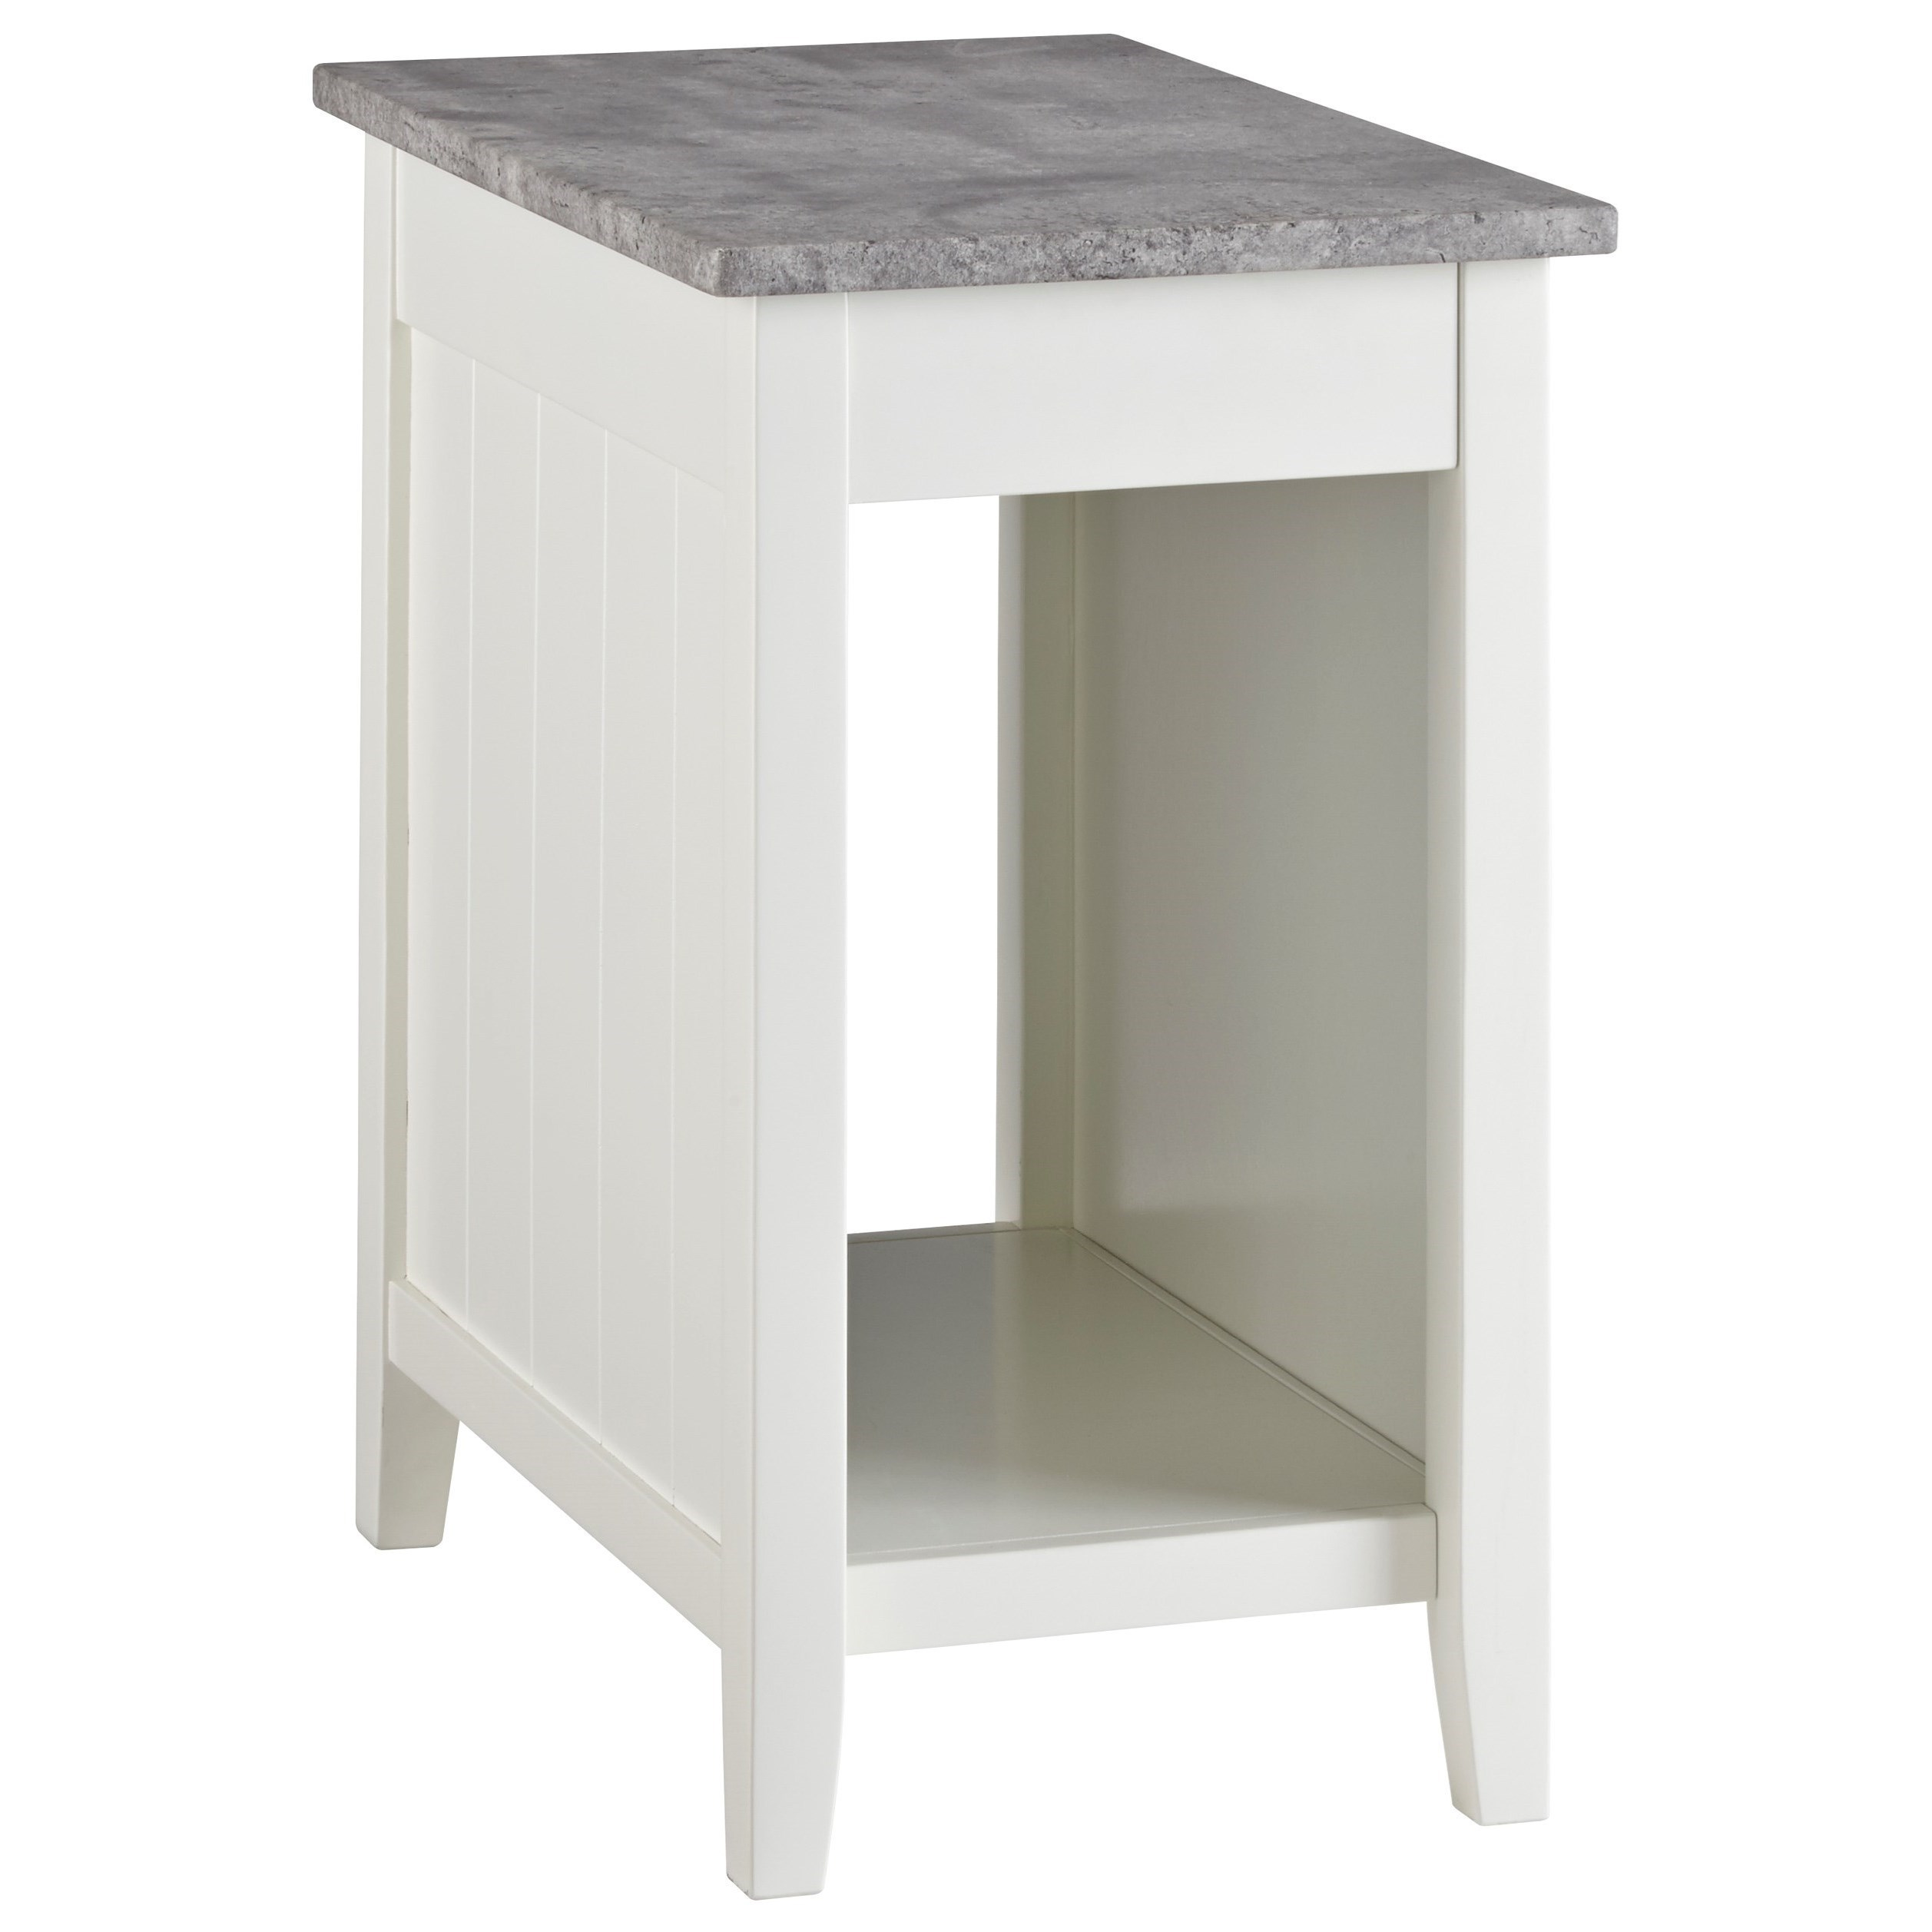 White Paint Chair Side End Table with Faux Concrete Top